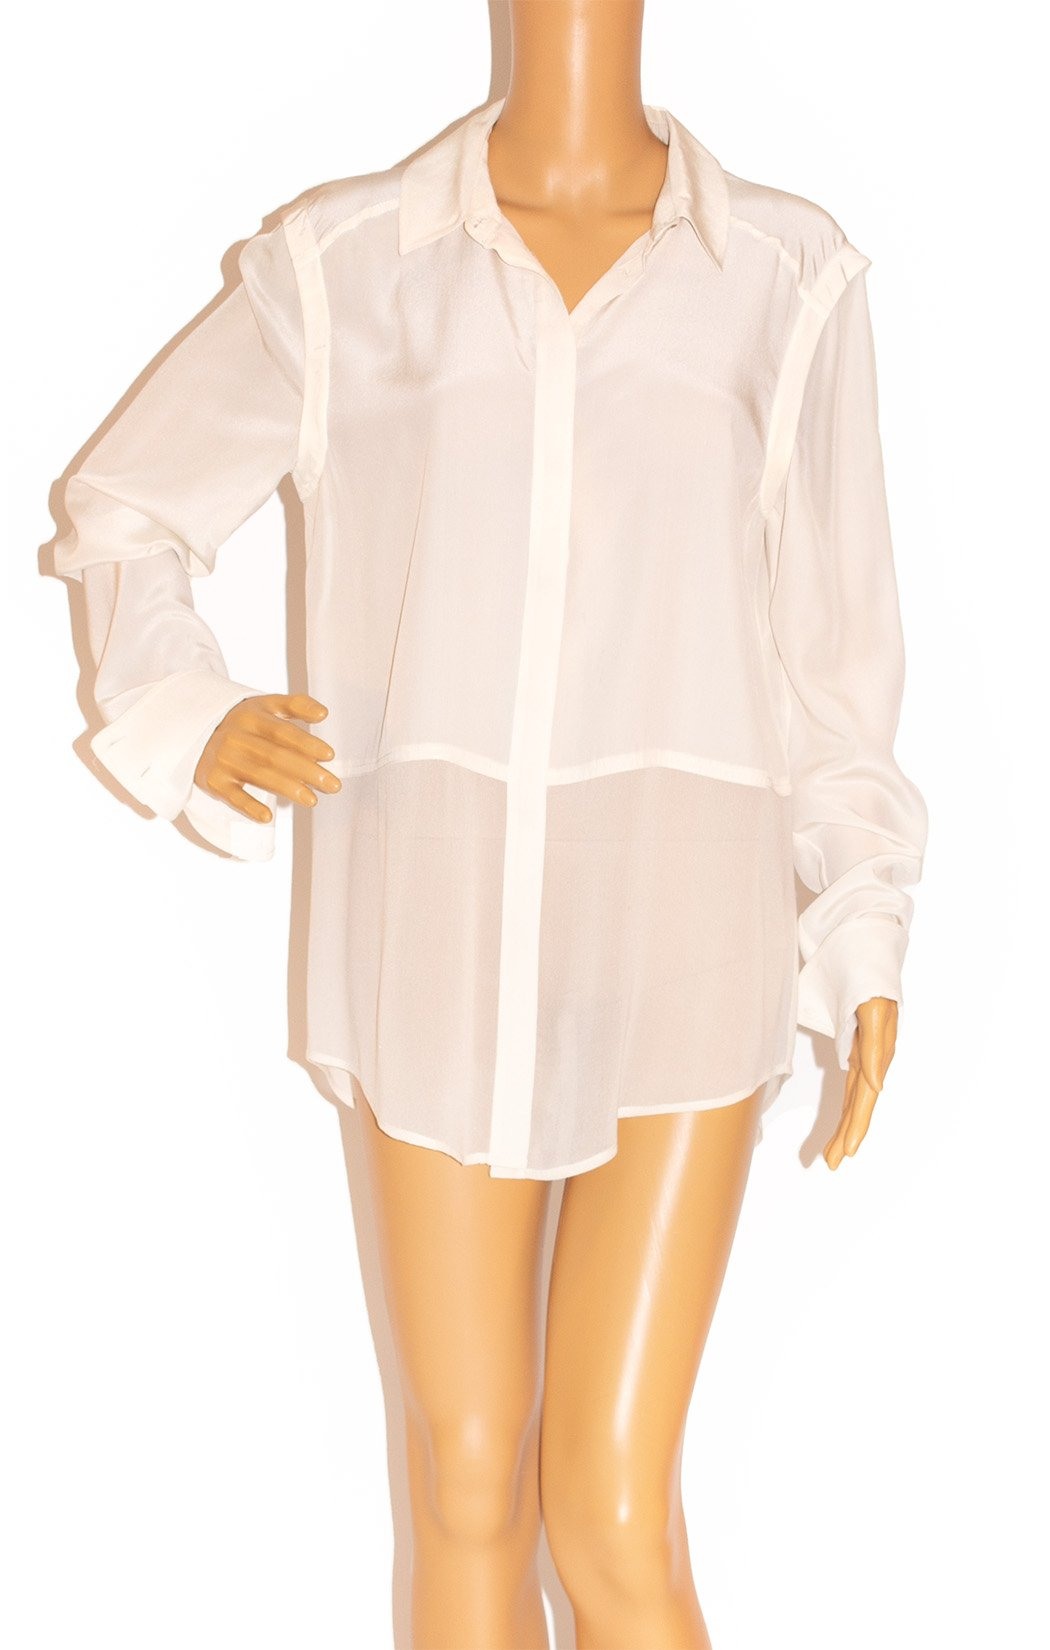 Closeup view of T by ALEXANDER WANG Blouse Size: Medium